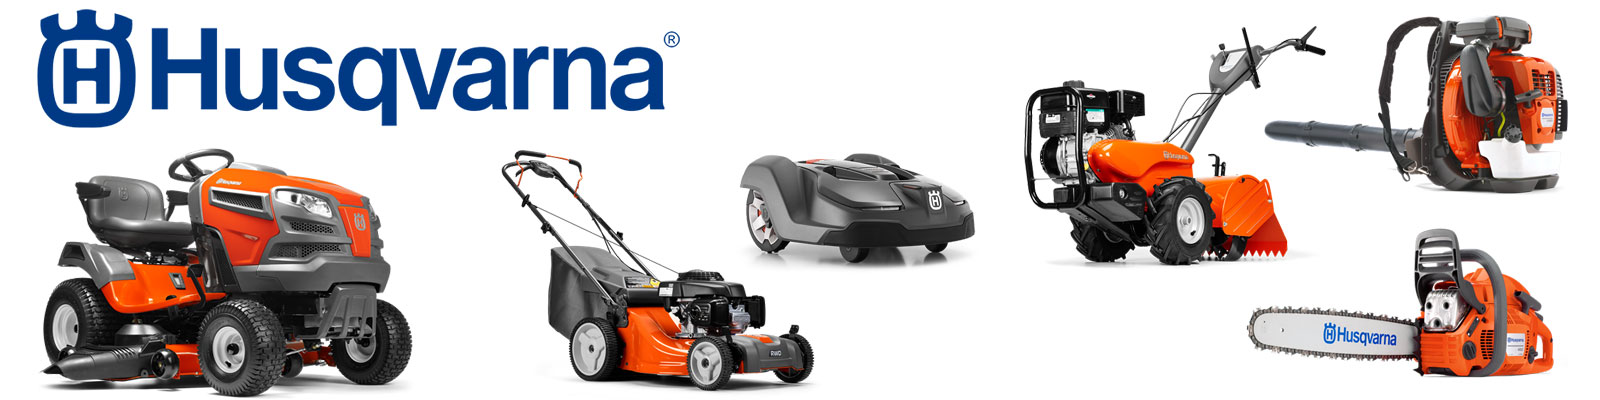 Husqvarna Equipment sales in the Twin Cities Metro area